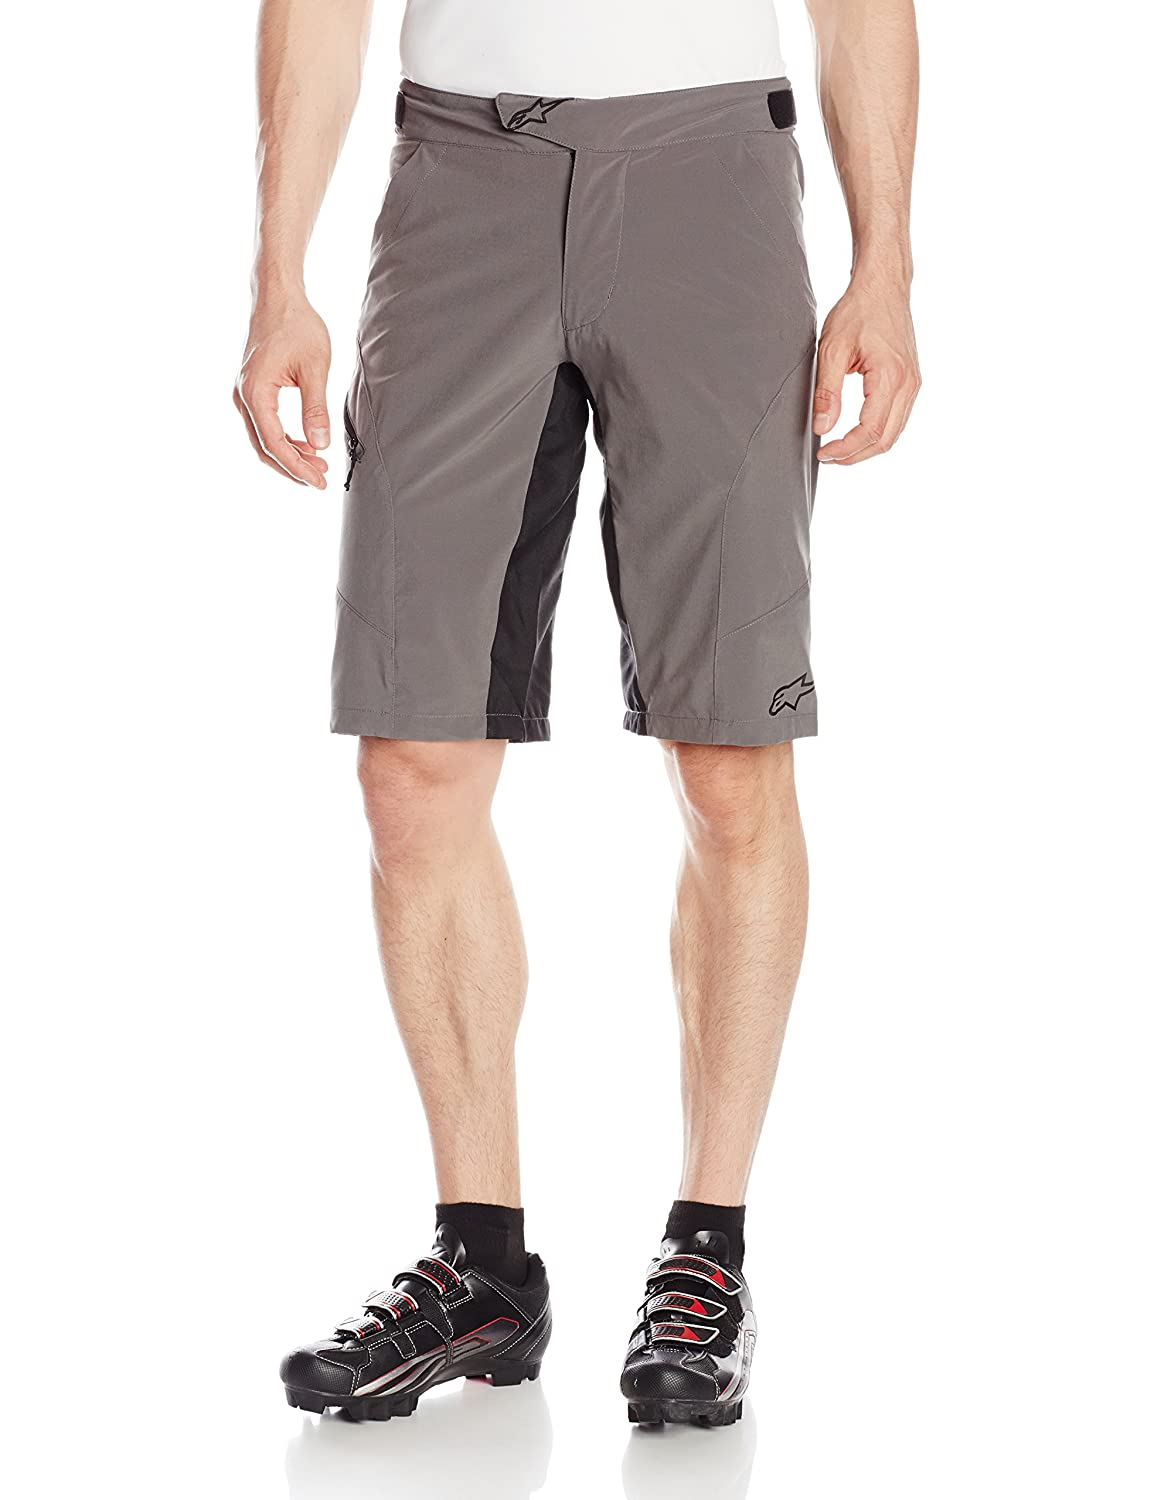 Alpinestars Short Hyperlight 2 Grau Gr. 30